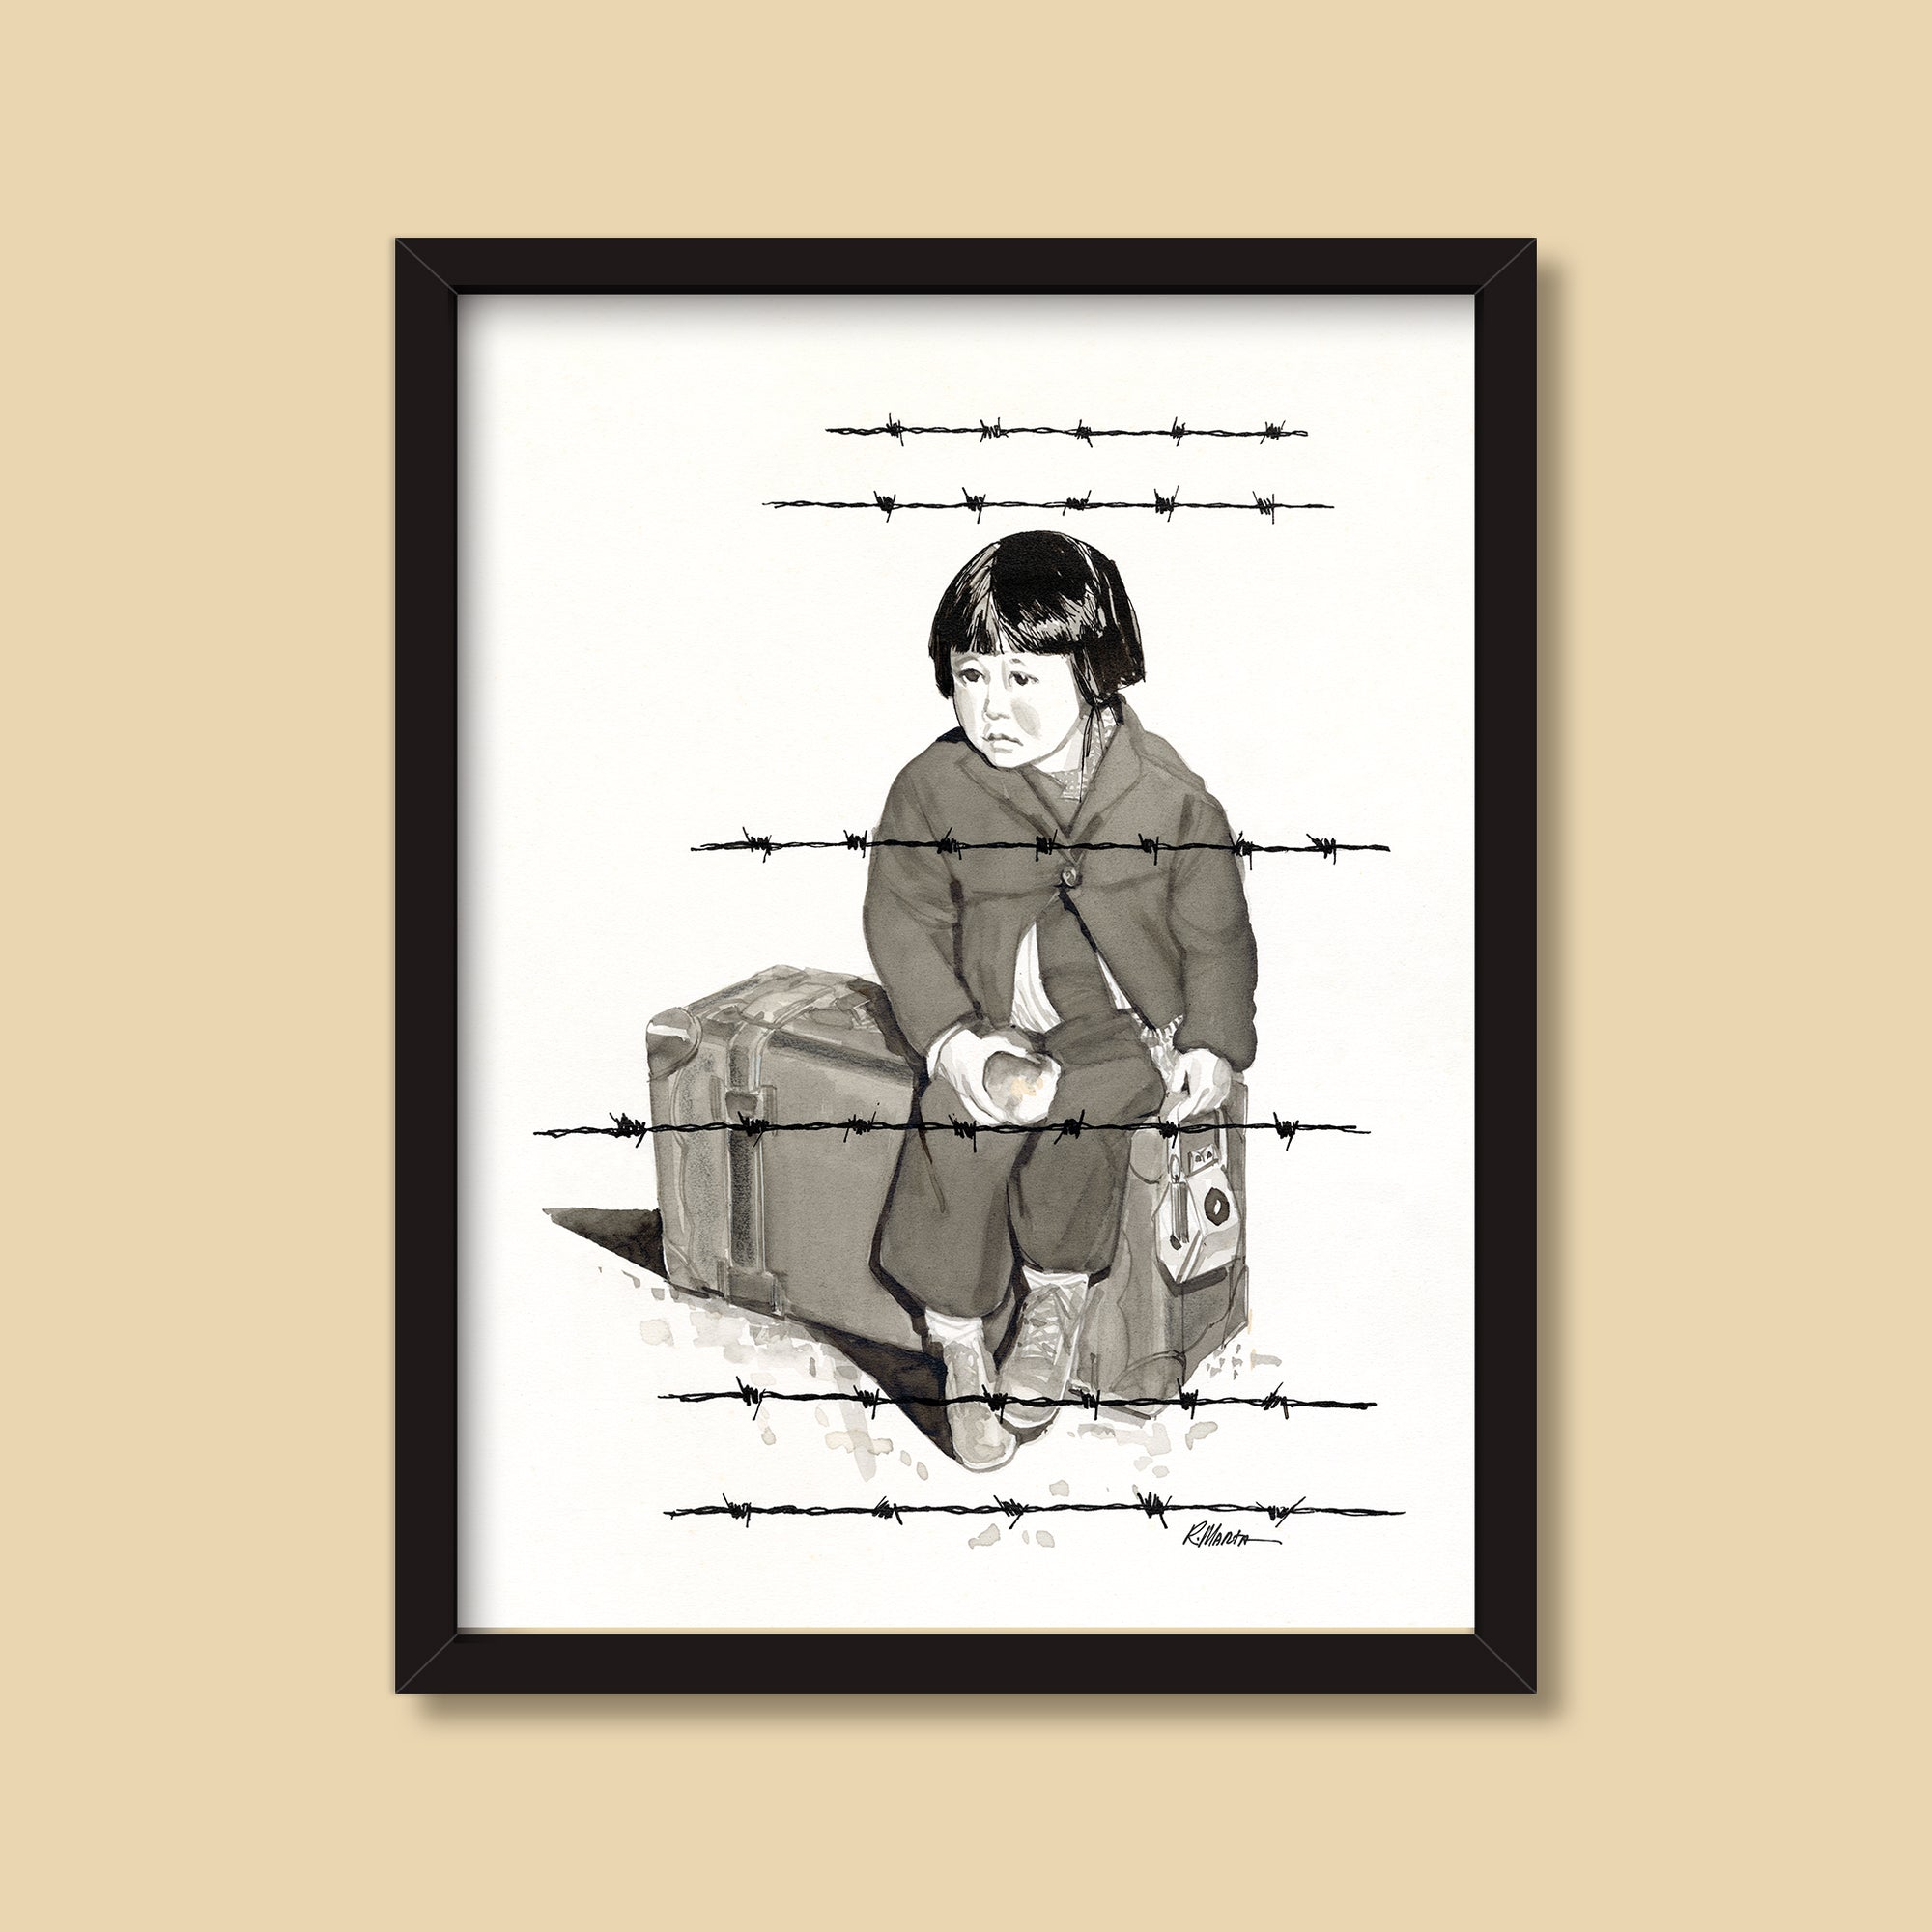 Move to Manzanar — vintage illustration by Ray Marta